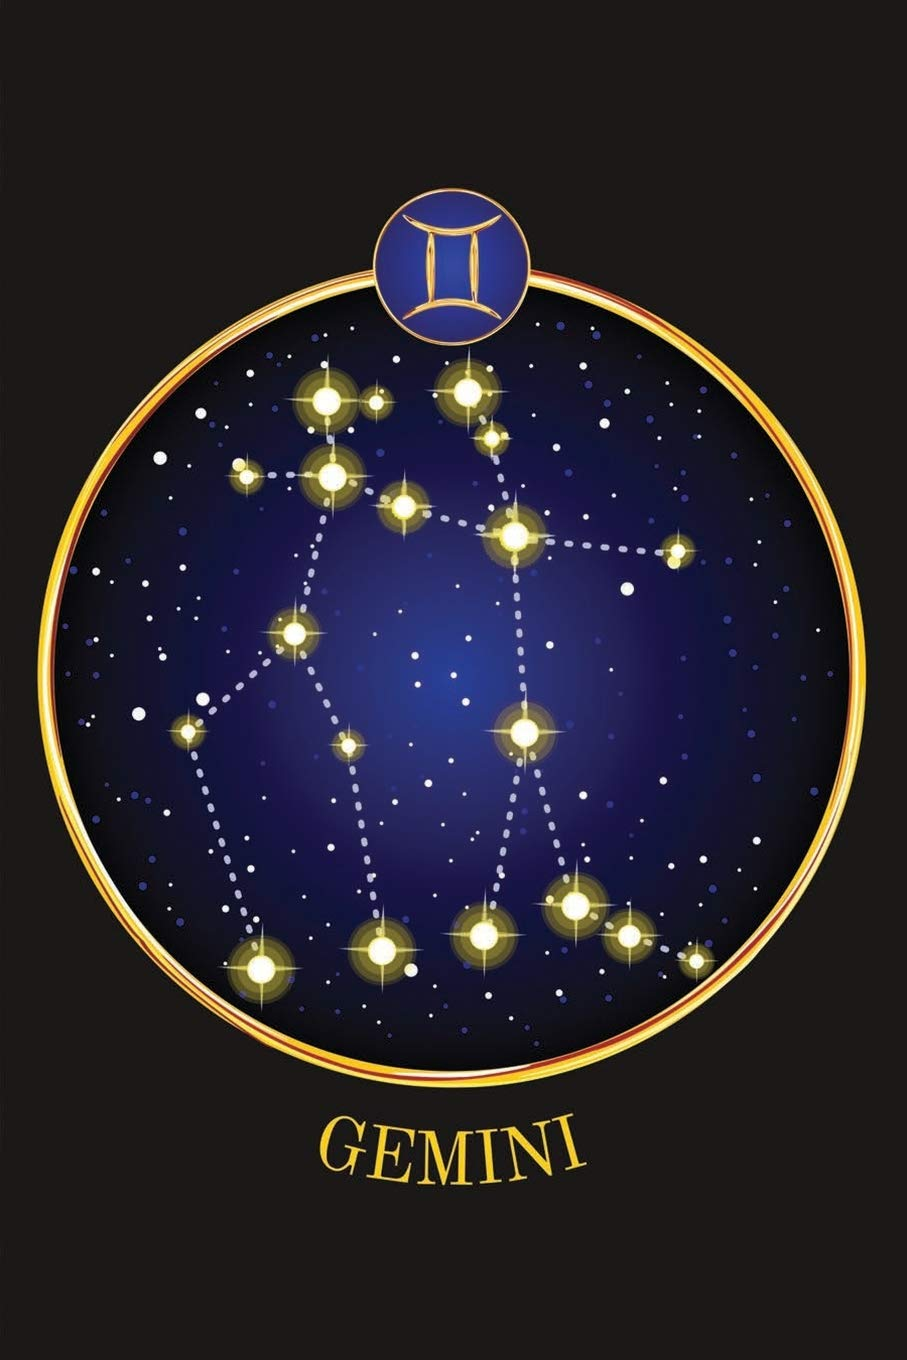 Amazon.com: Gemini Zodiac Constellation Journal: Lined Pages for Writing  Journal Entries Notes or Use as Diary | Horoscope & Astrology Theme  (Journal for Writing – Zodiac Constellations) (9781070628608): Rock,  Living: Books